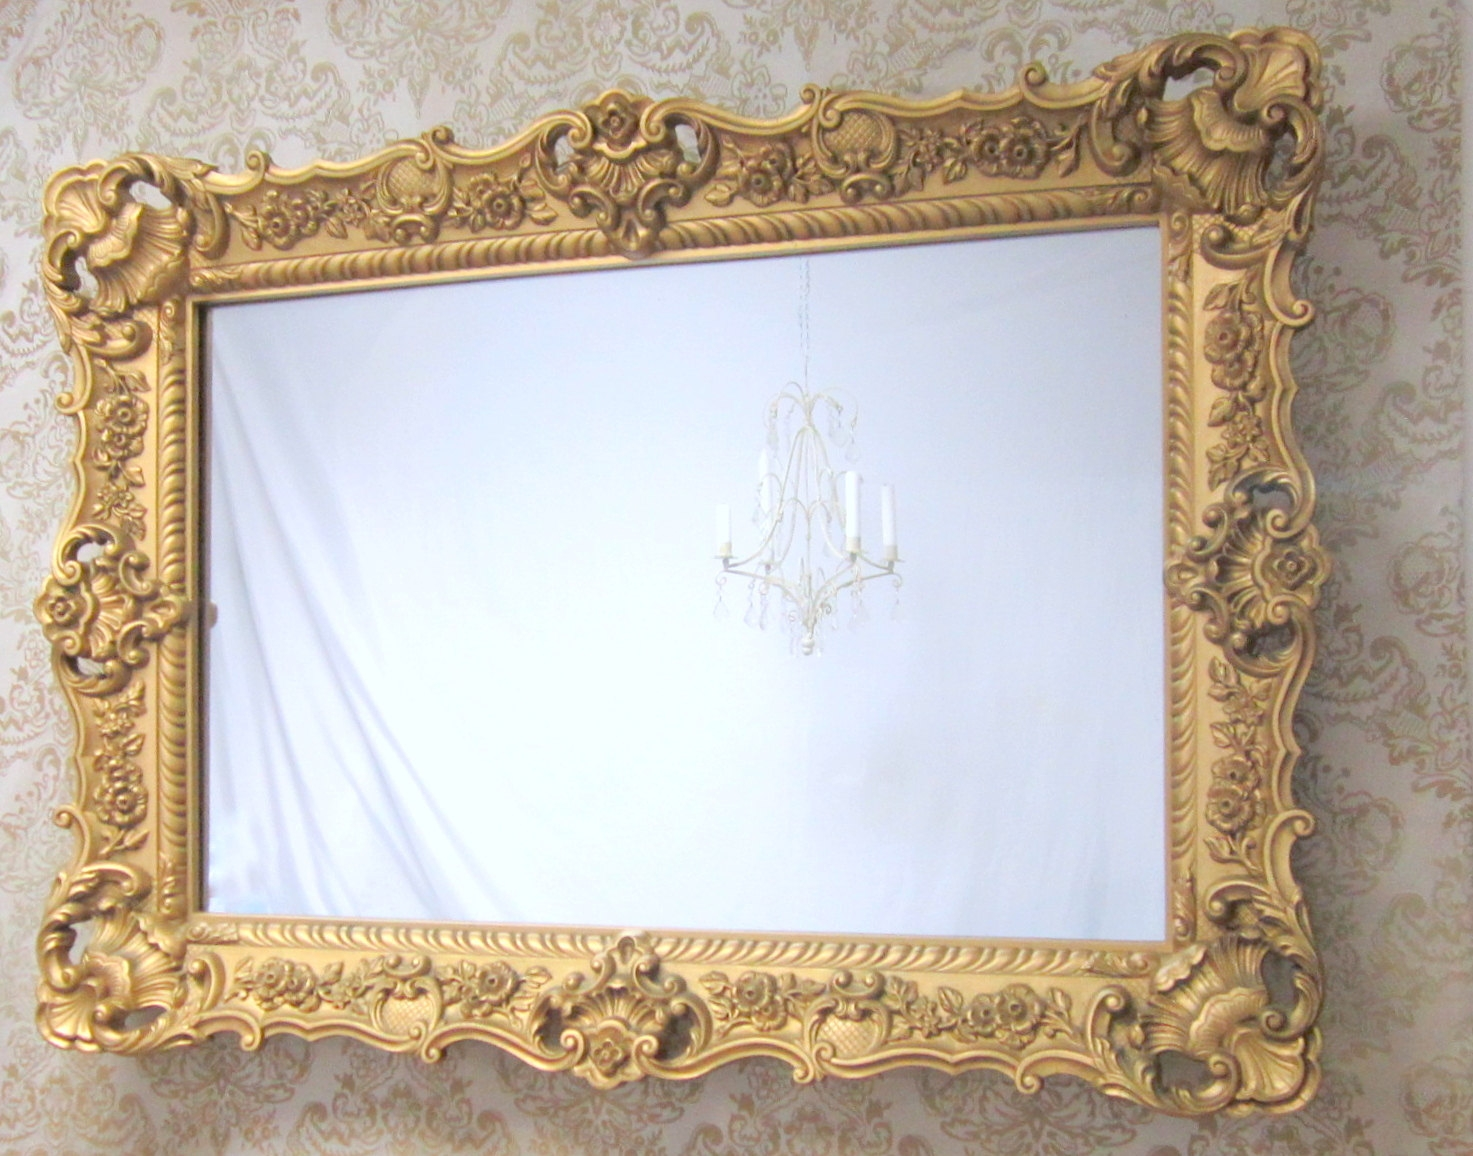 15 collection of large antique mirrors for sale mirror ideas Large wooden mirrors for sale